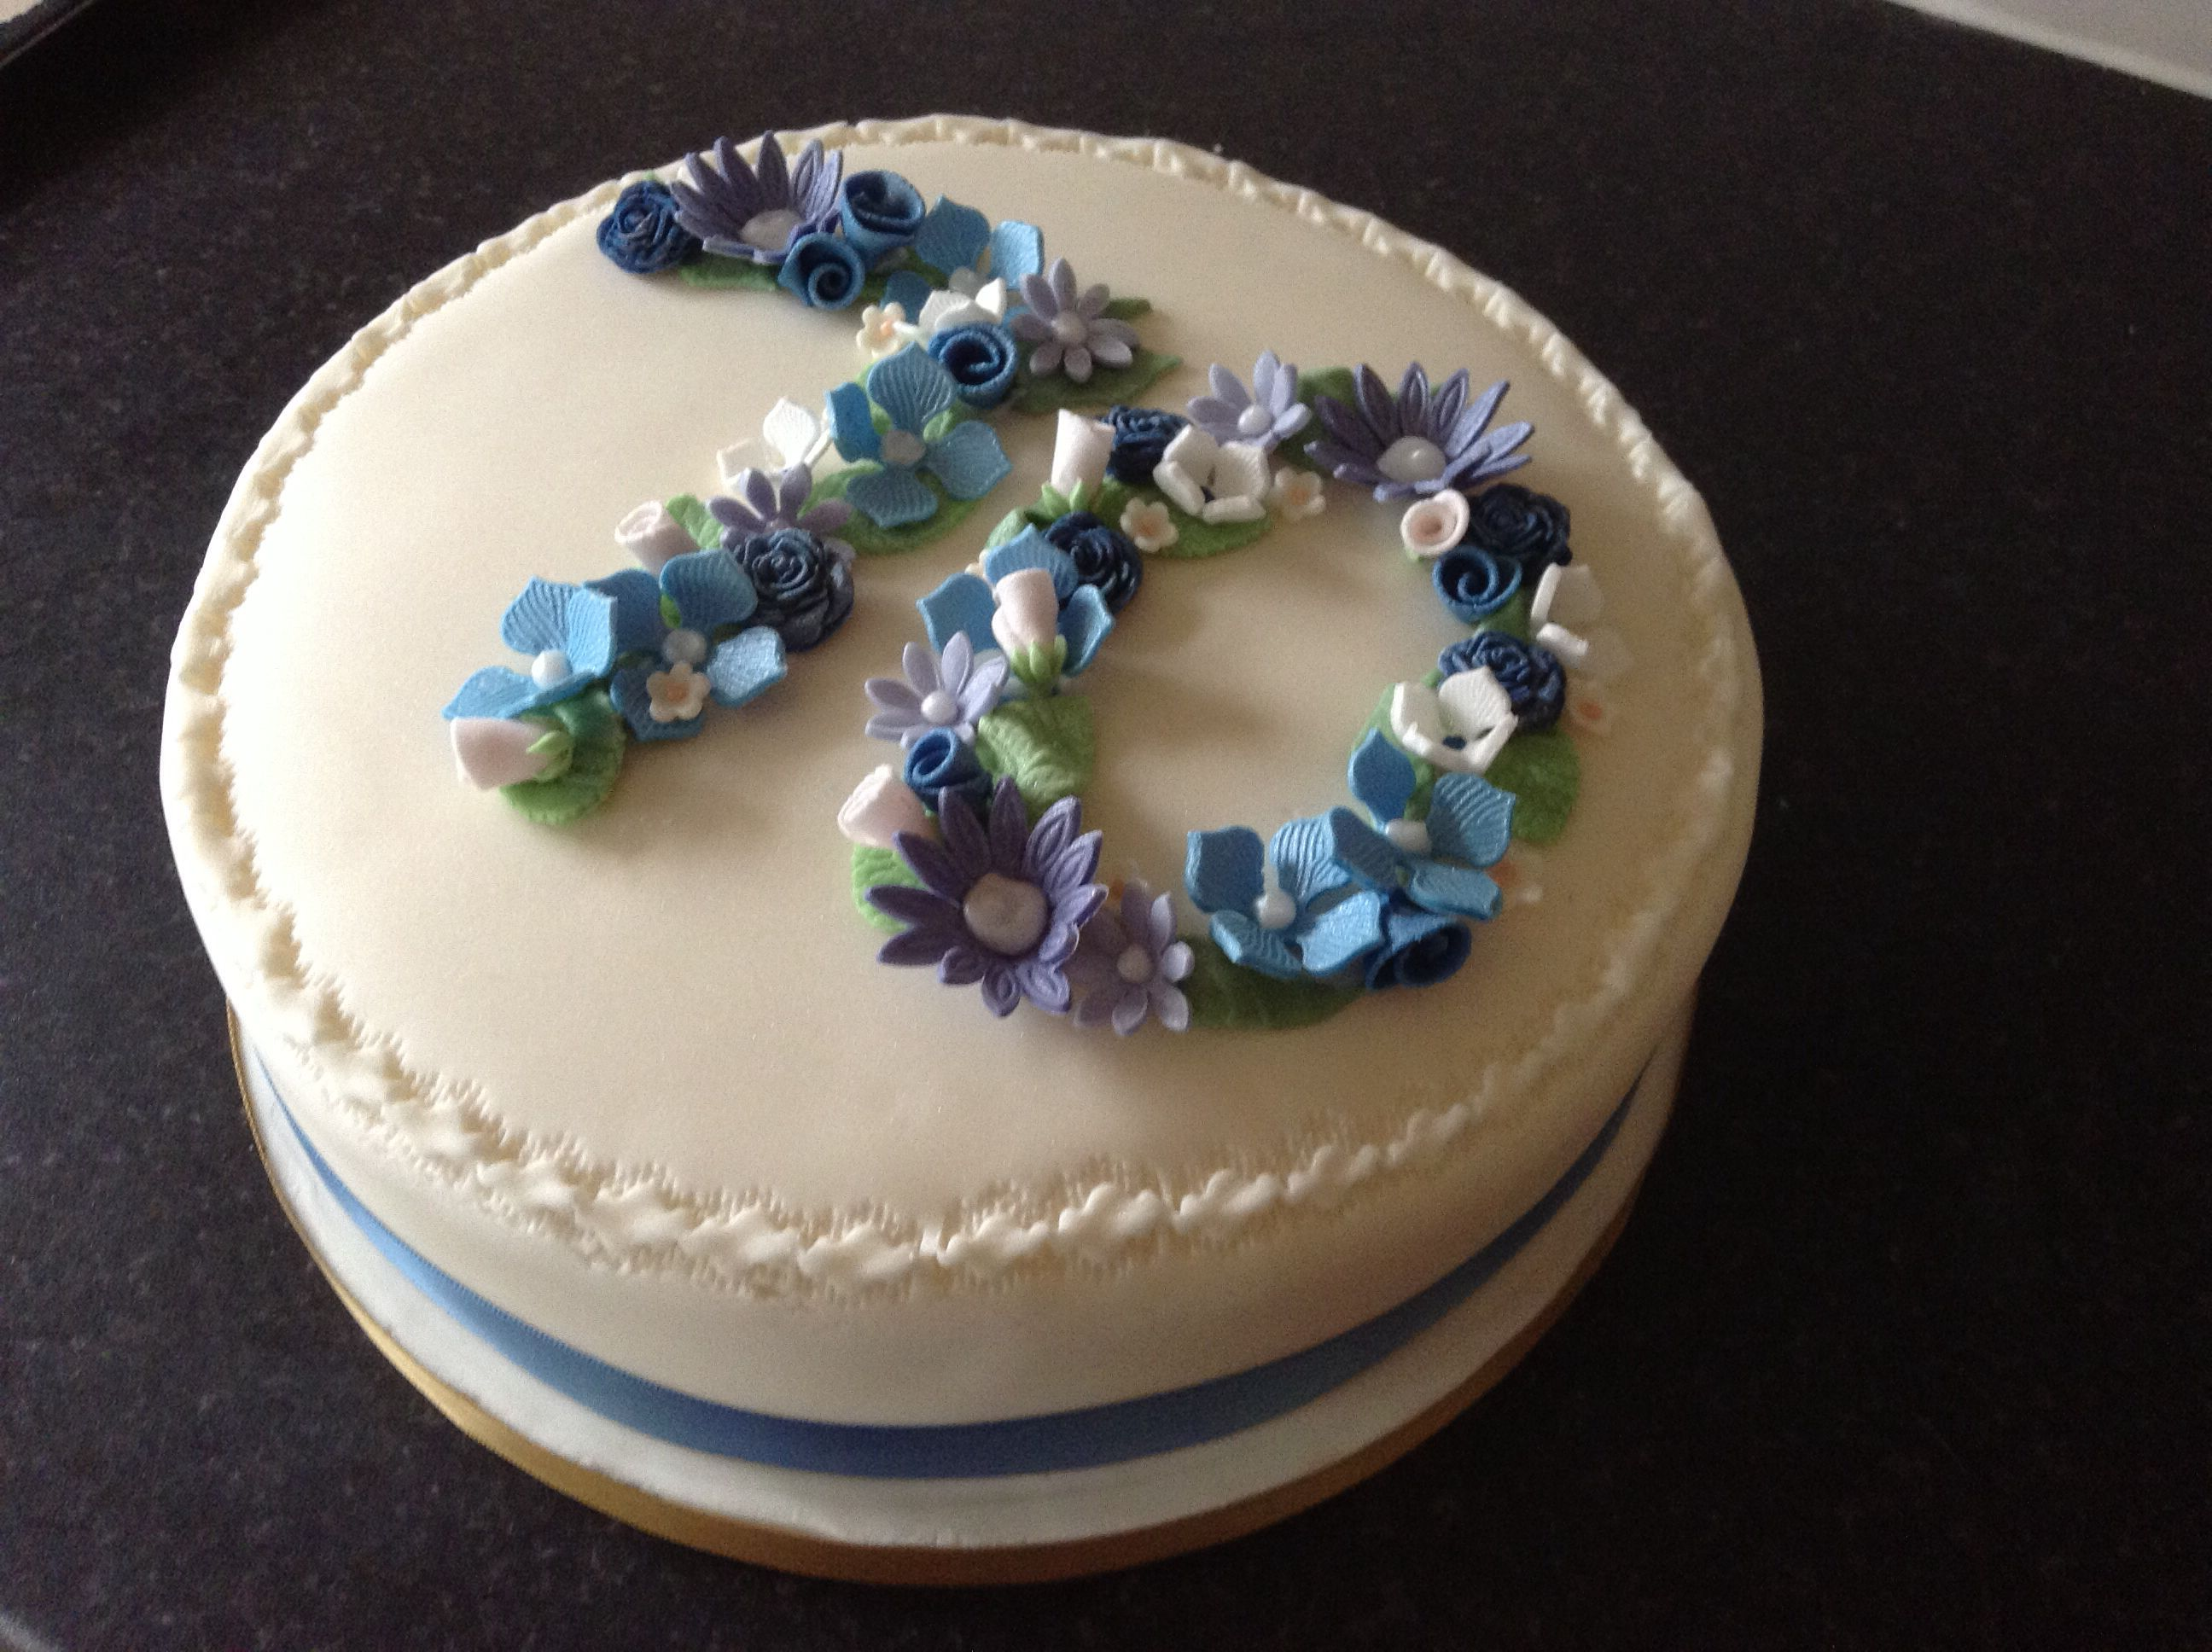 70th birthday cake cakes pinterest for 70th birthday cake decoration ideas